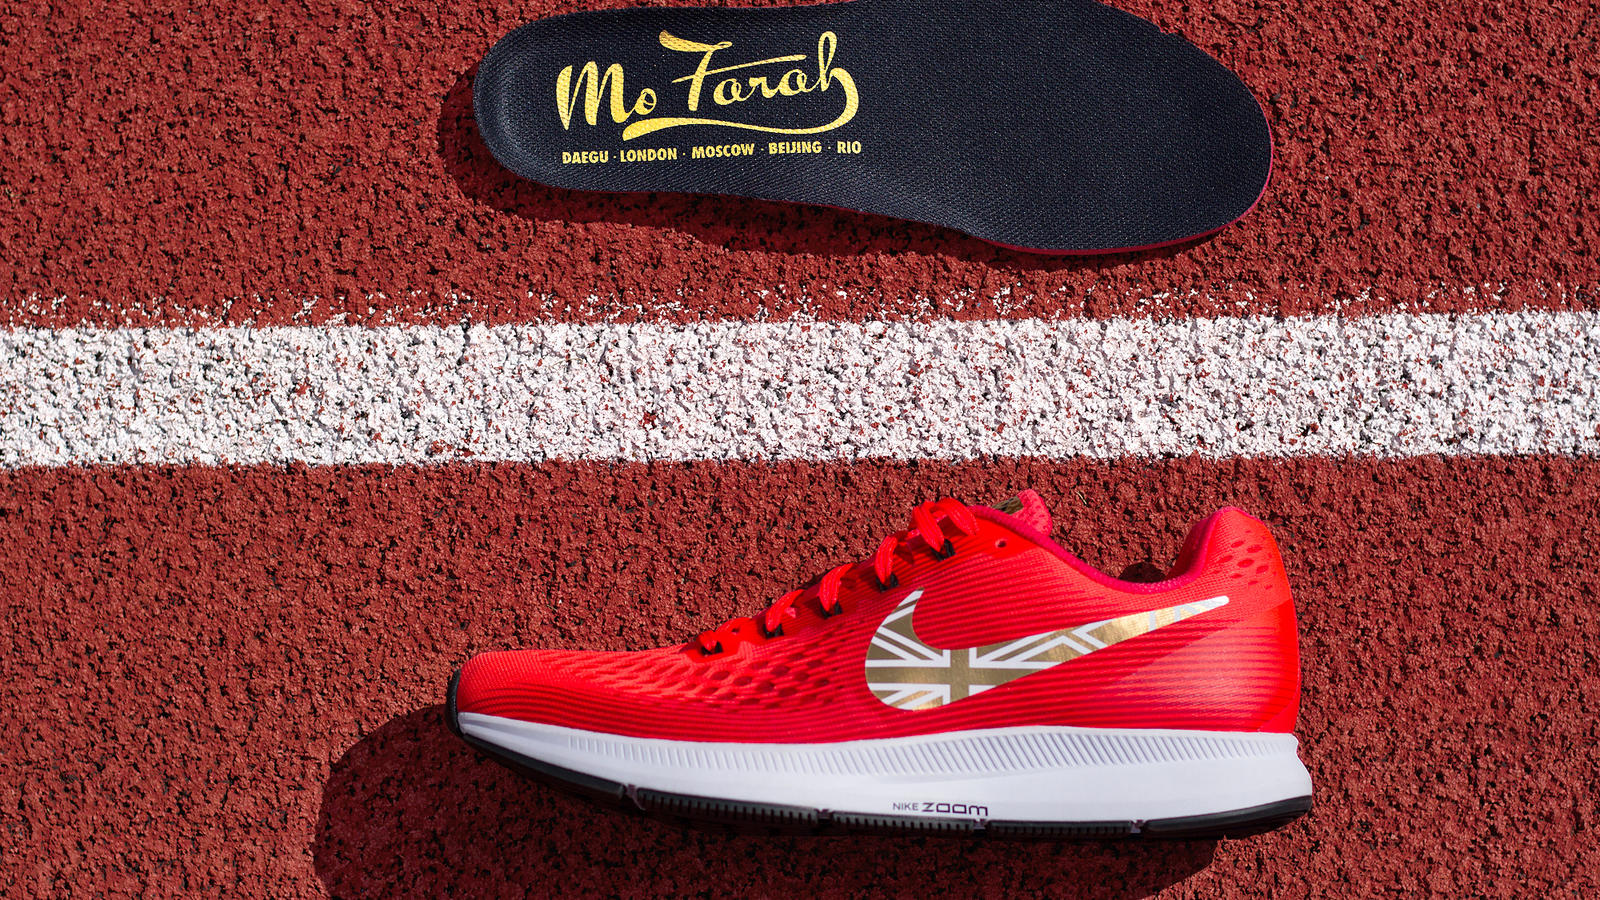 4faa8418fc435 Mo Farah Takes on the London Track One Last Time - Nike News